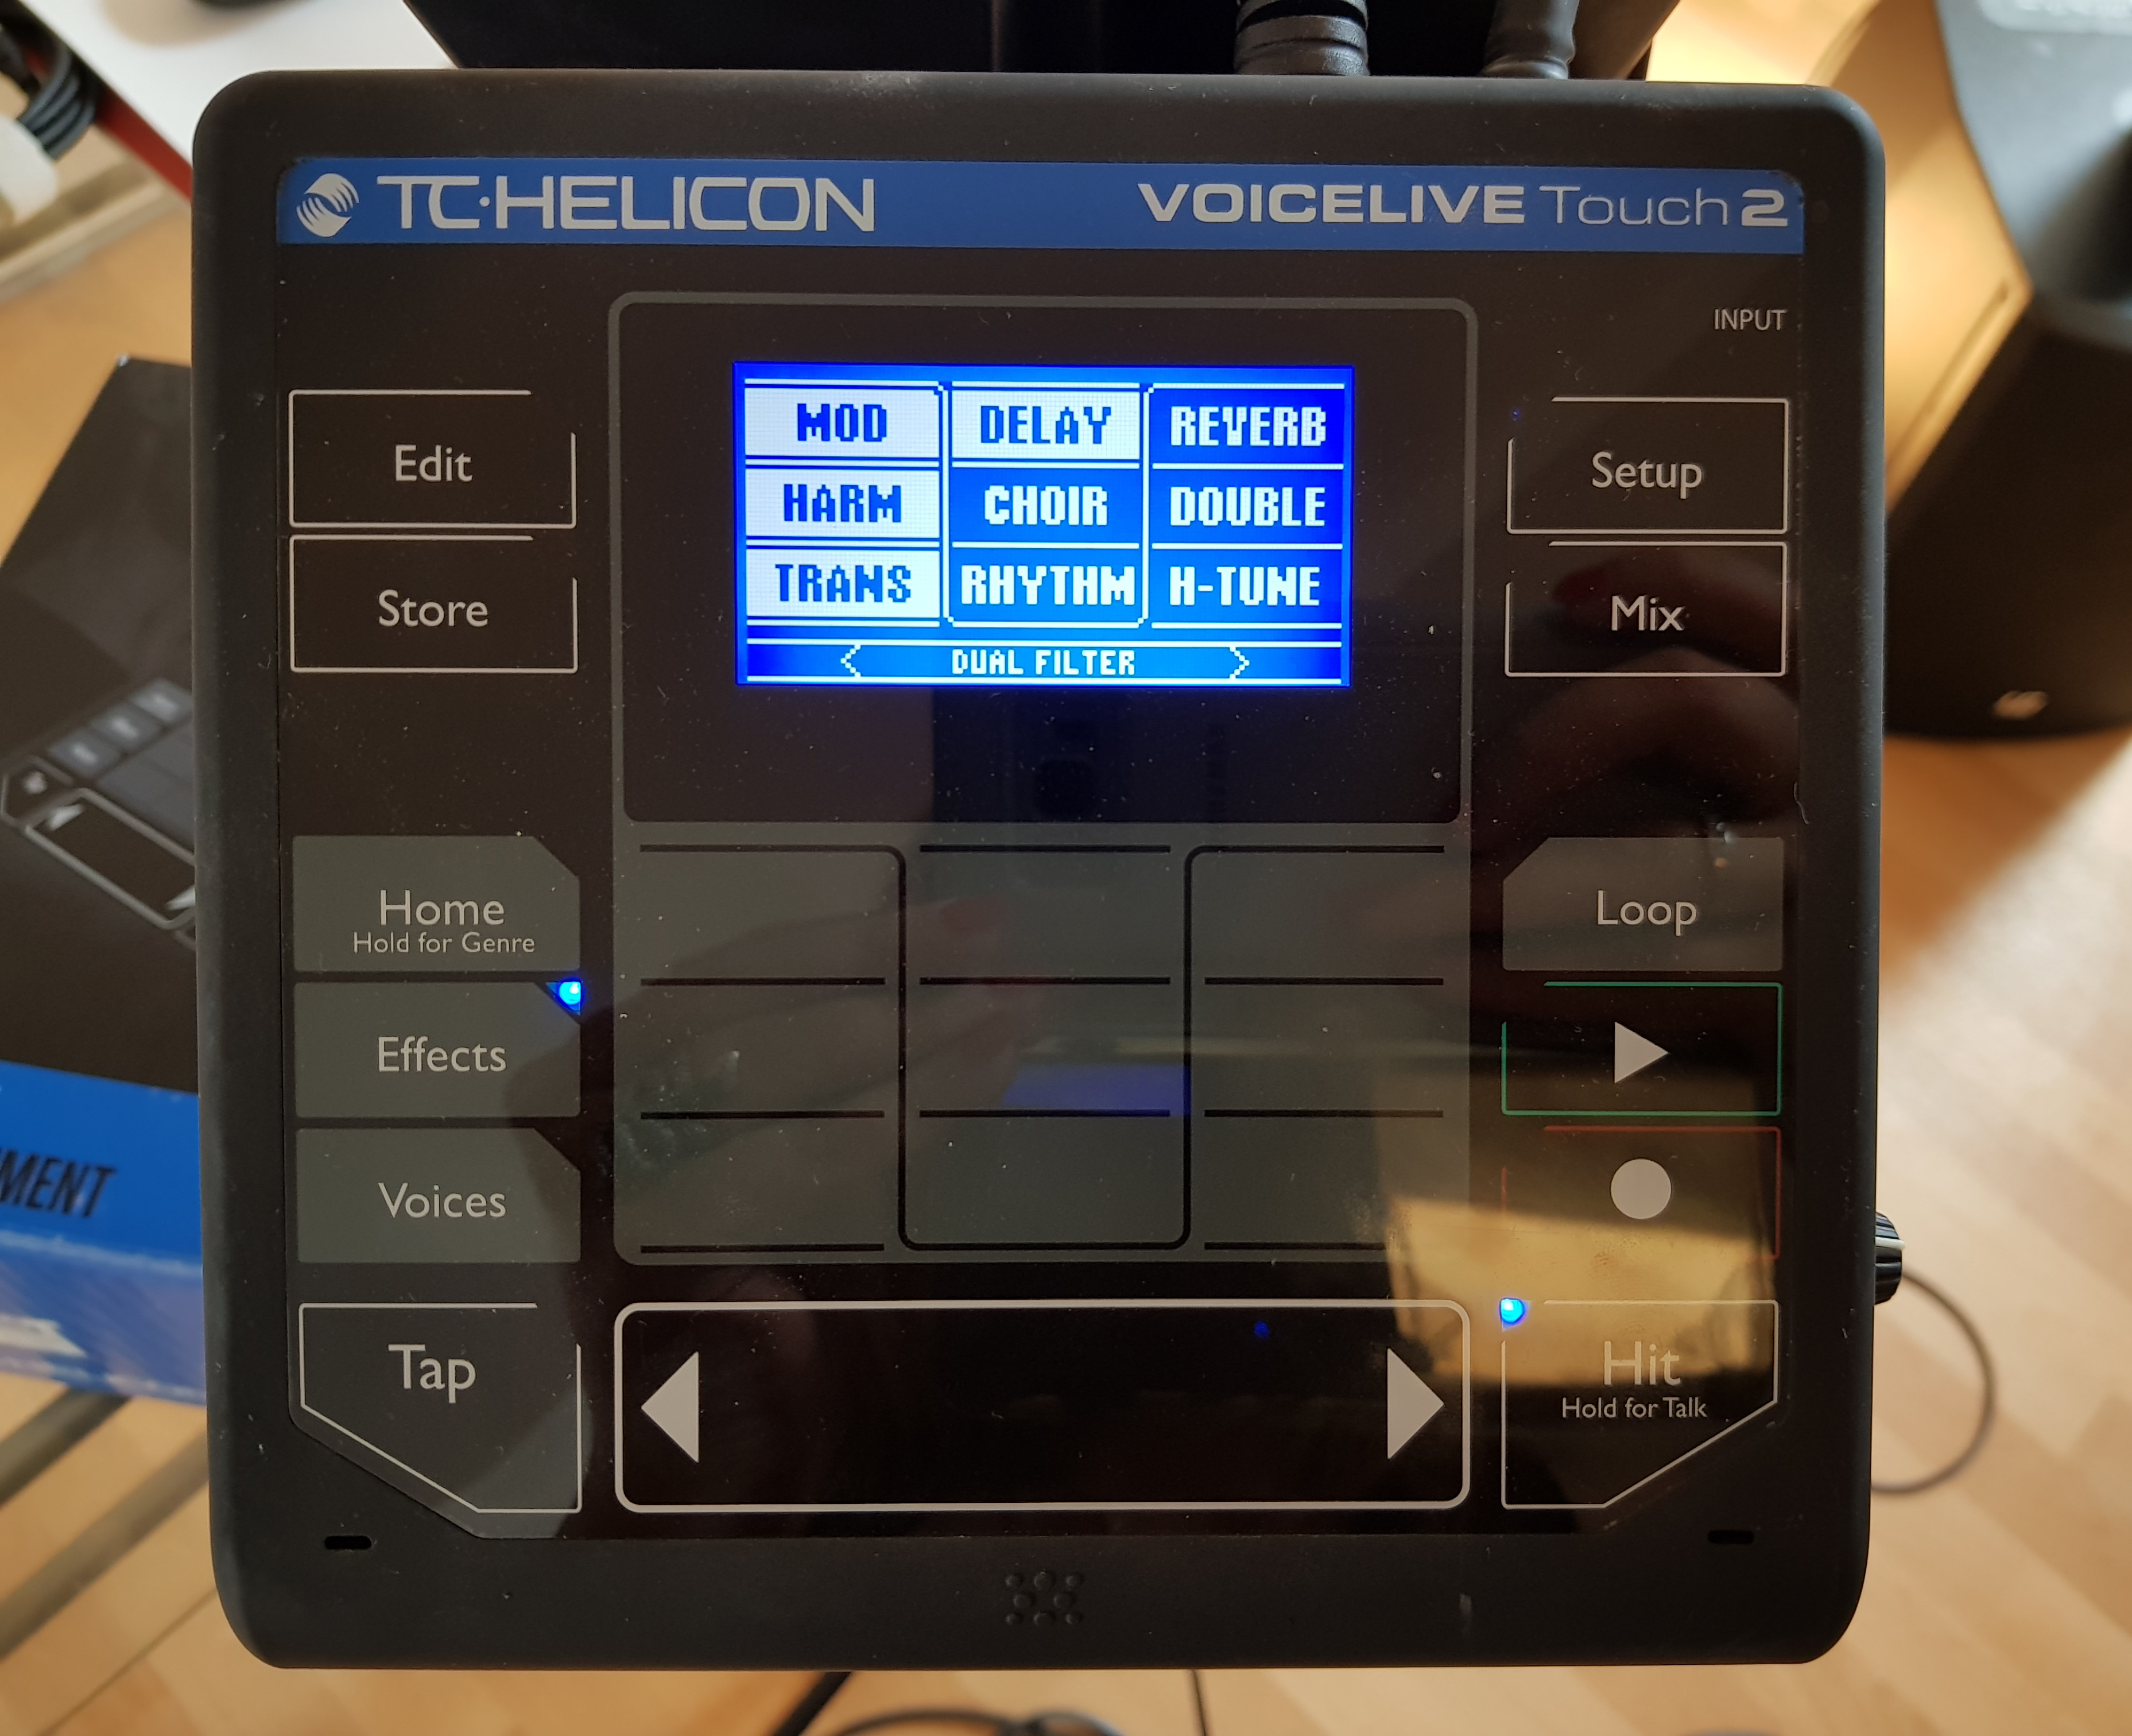 photo tc helicon voicelive touch 2 tc helicon voicelive touch 2 52738 1930622 audiofanzine. Black Bedroom Furniture Sets. Home Design Ideas